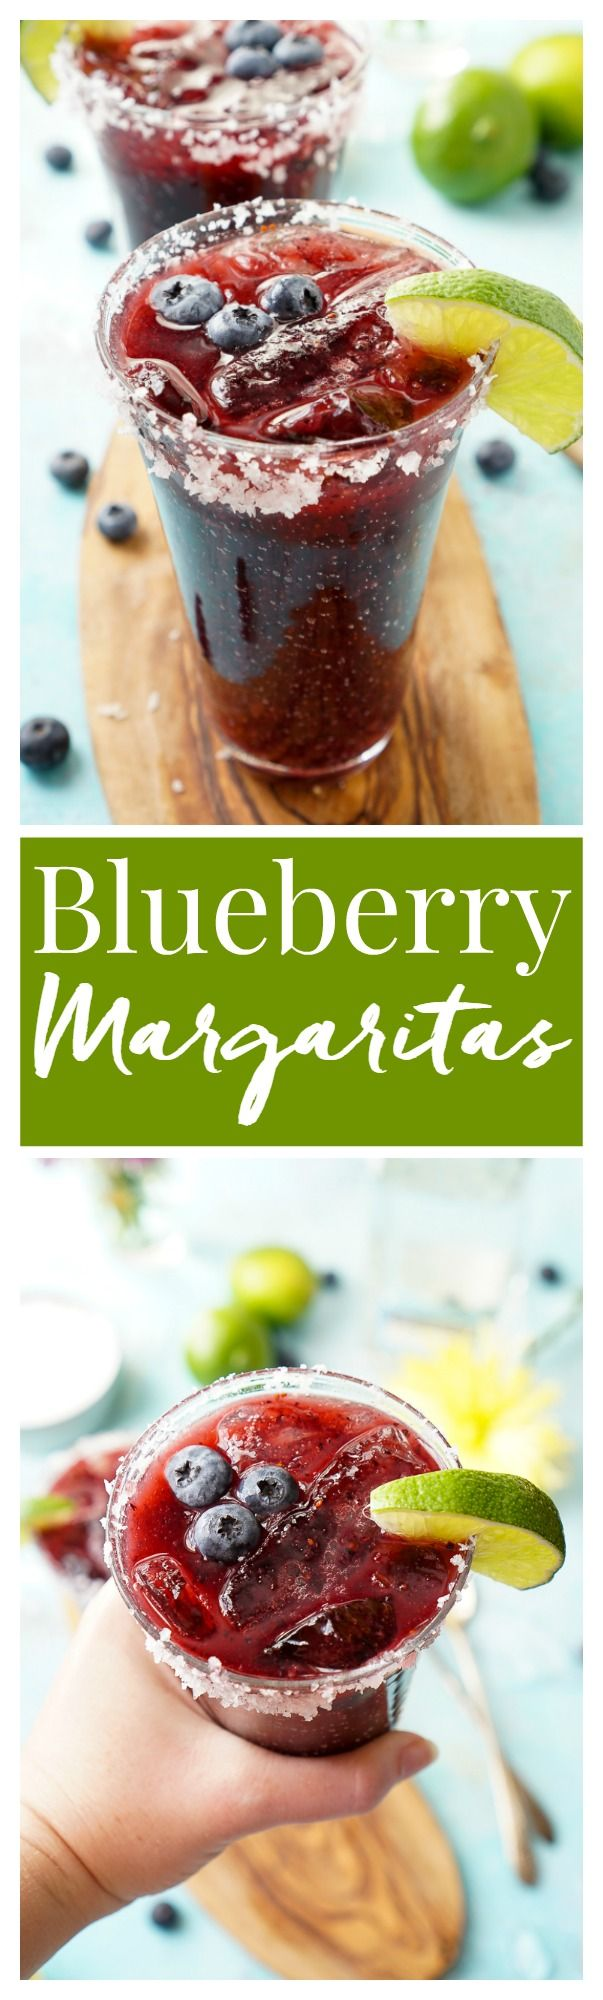 This Fresh Blueberry Margarita is made with ripe blueberries and Altos Tequila for a New England take on the classic cocktail! #AltosTequila #ad @altostequila